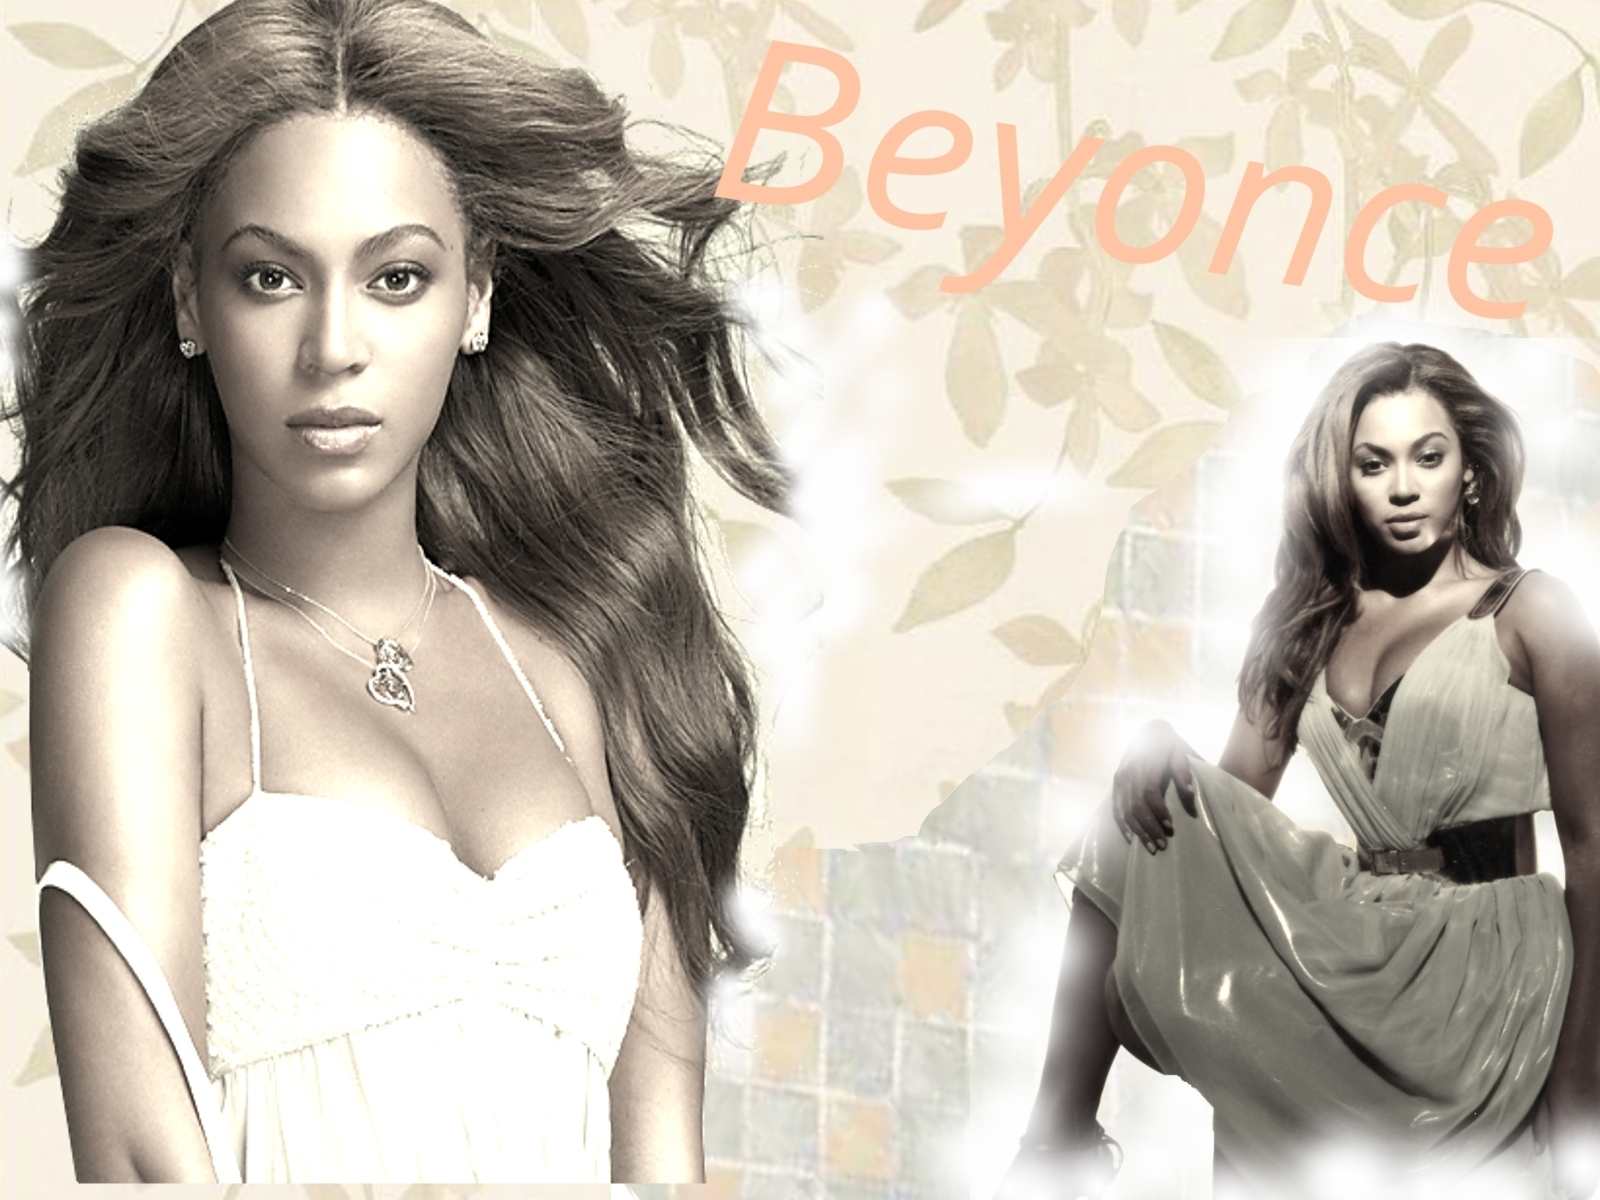 BEYONCE - BEYONCE Wallpaper (9768006) - Fanpop